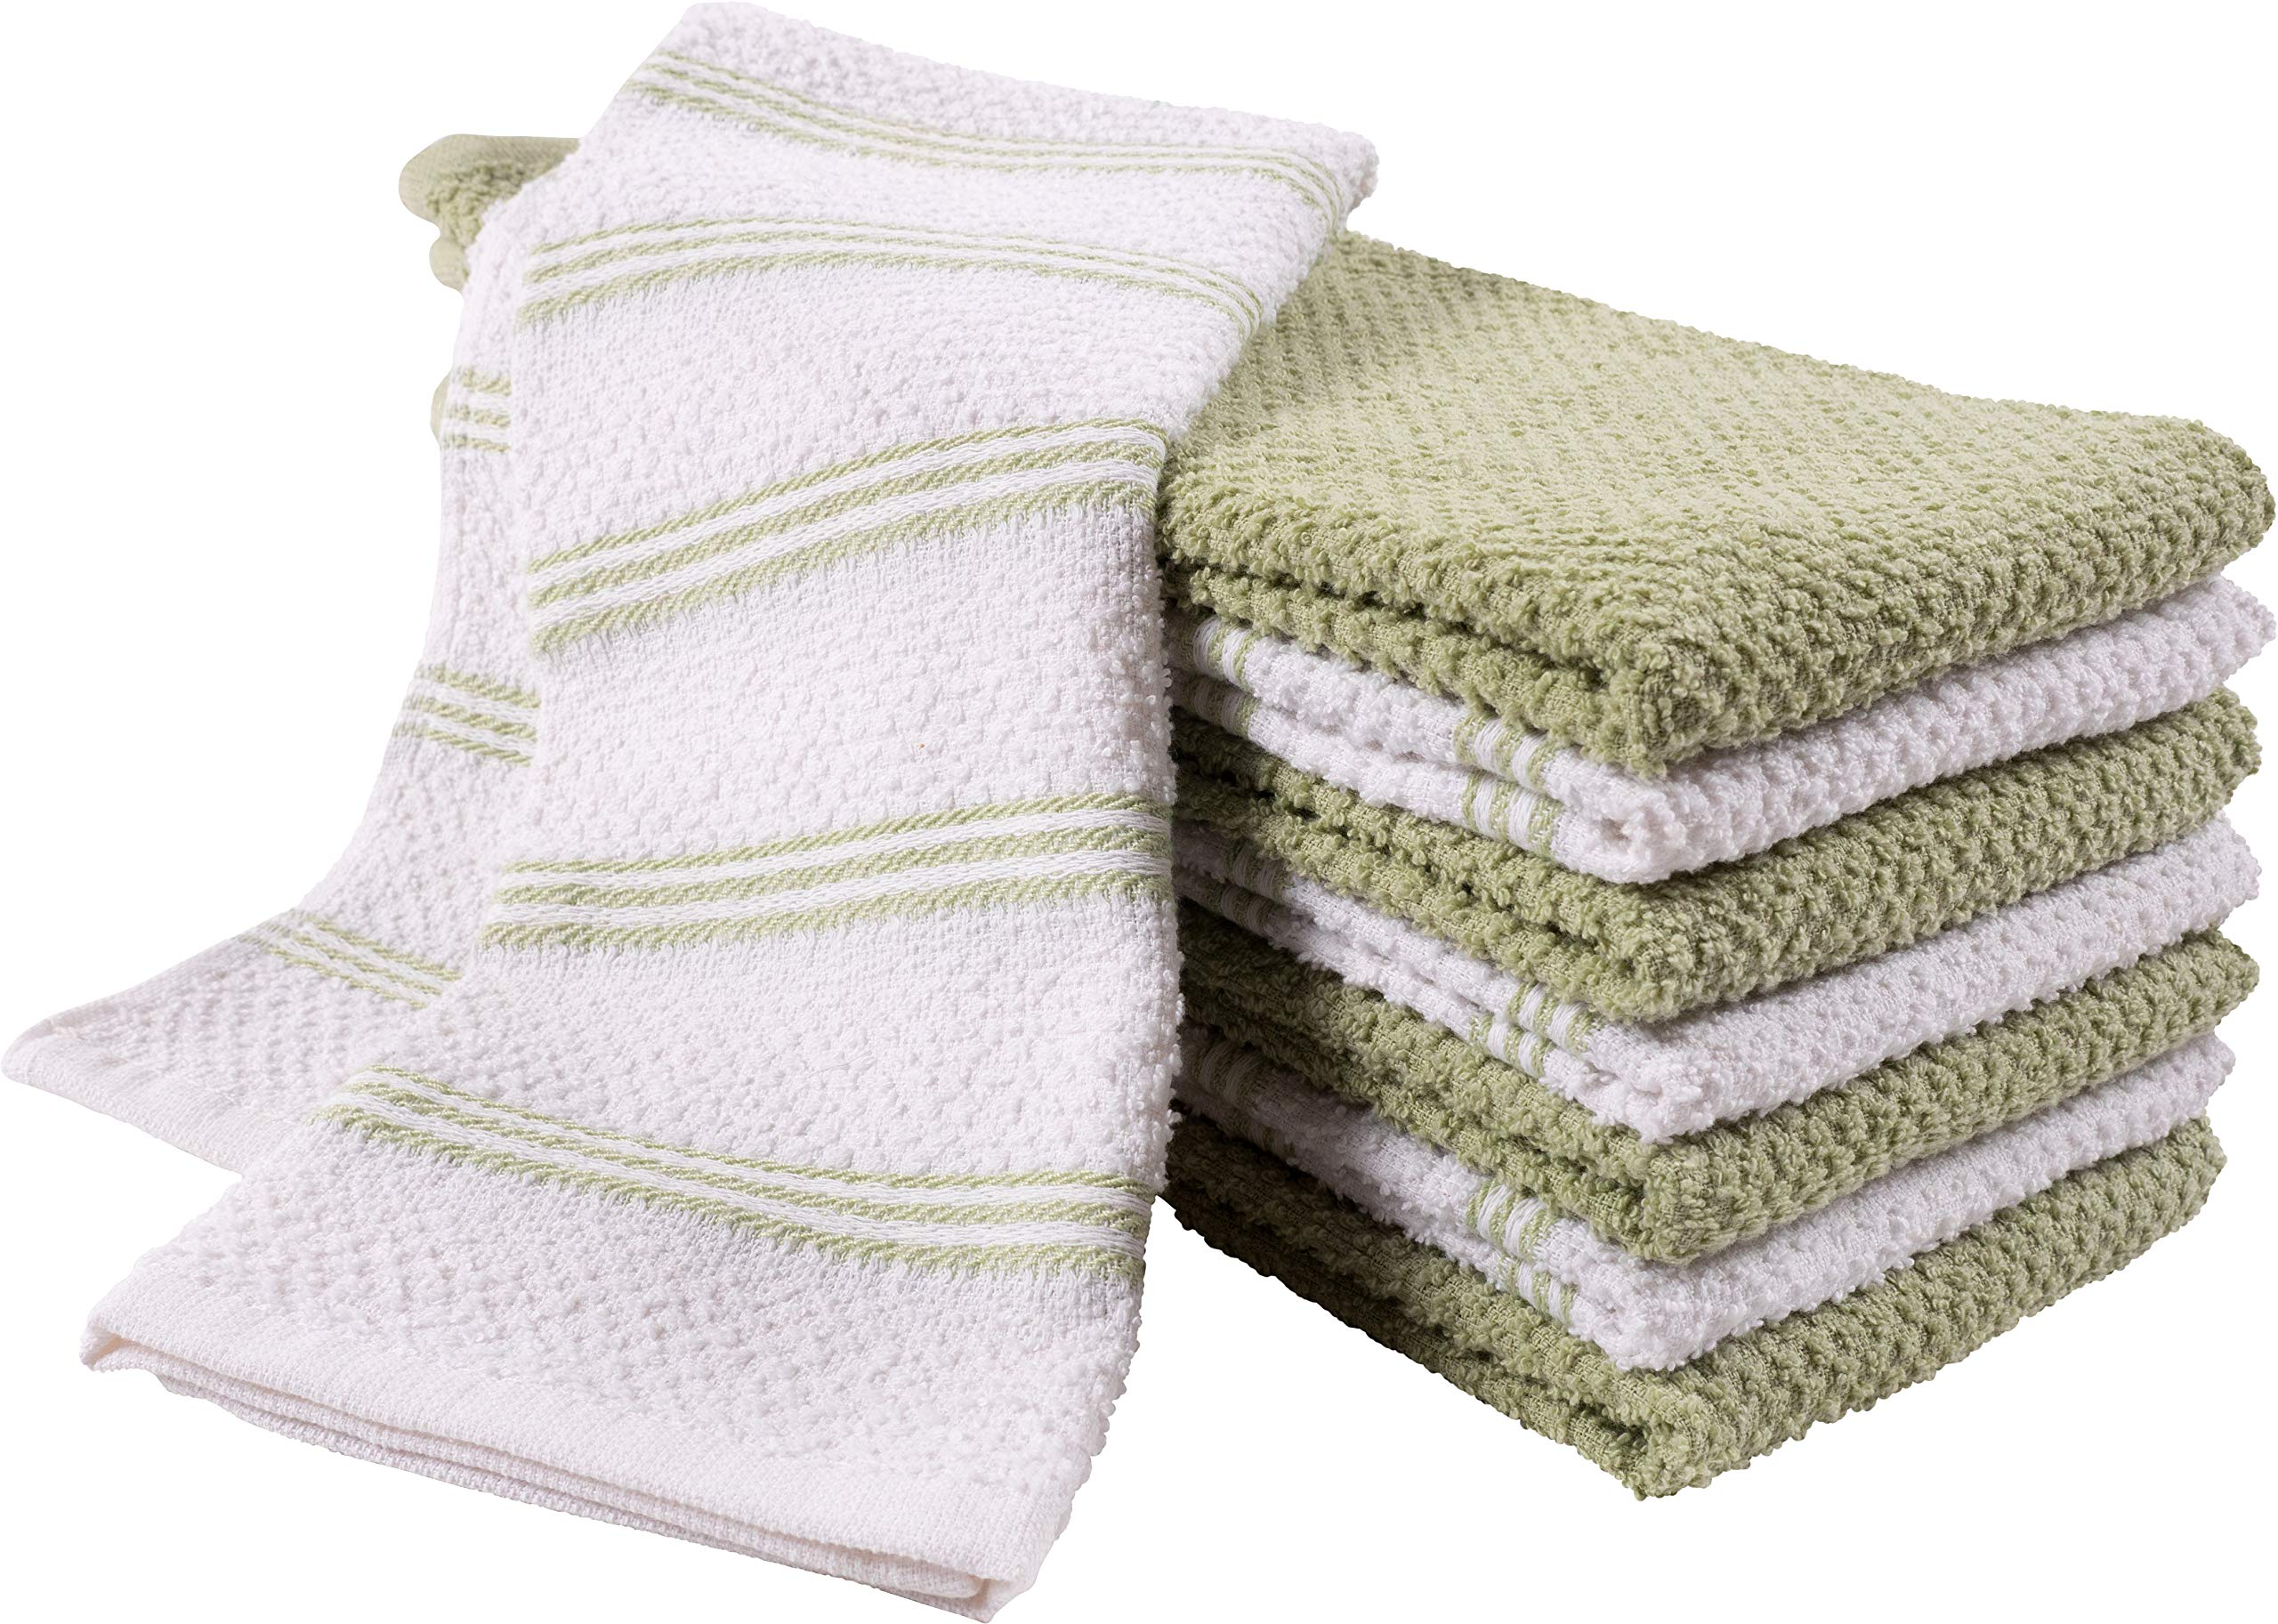 KAF Home Pantry Piedmont Kitchen Towels (Set of 8, 16x26 inches), 100% Cotton, Ultra Absorbent Terry Towels - Sage Green